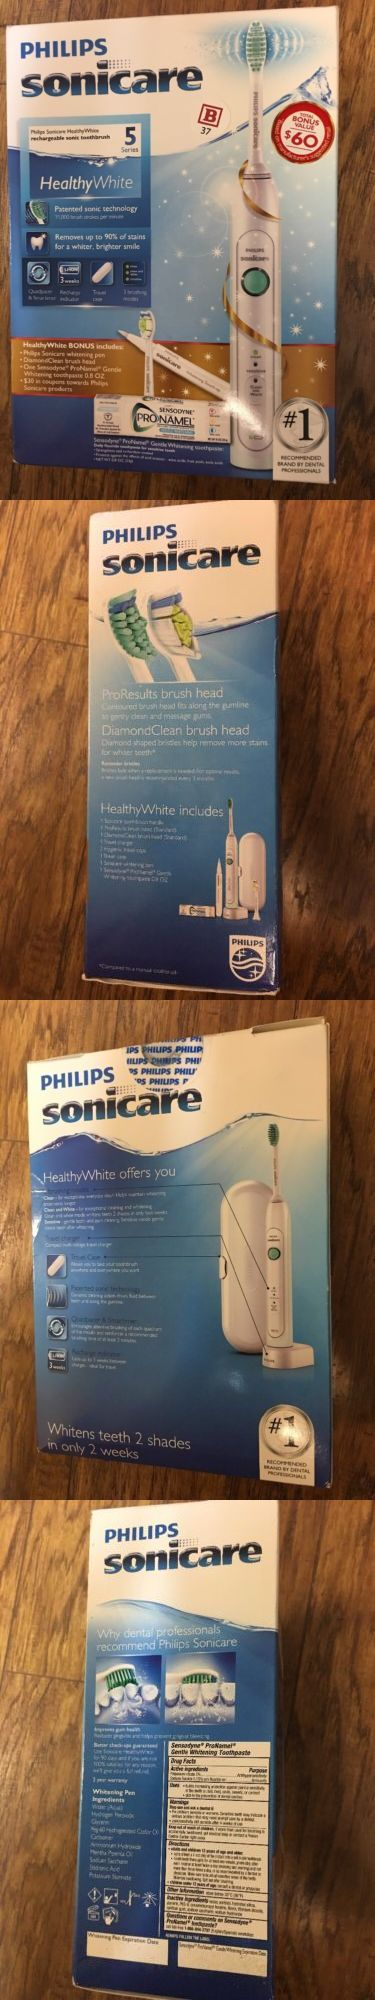 Standard Toothbrushes: Philips Sonicare Healthy White Electric Toothbrush Holiday Pack, 4 Pc -> BUY IT NOW ONLY: $119.99 on eBay!